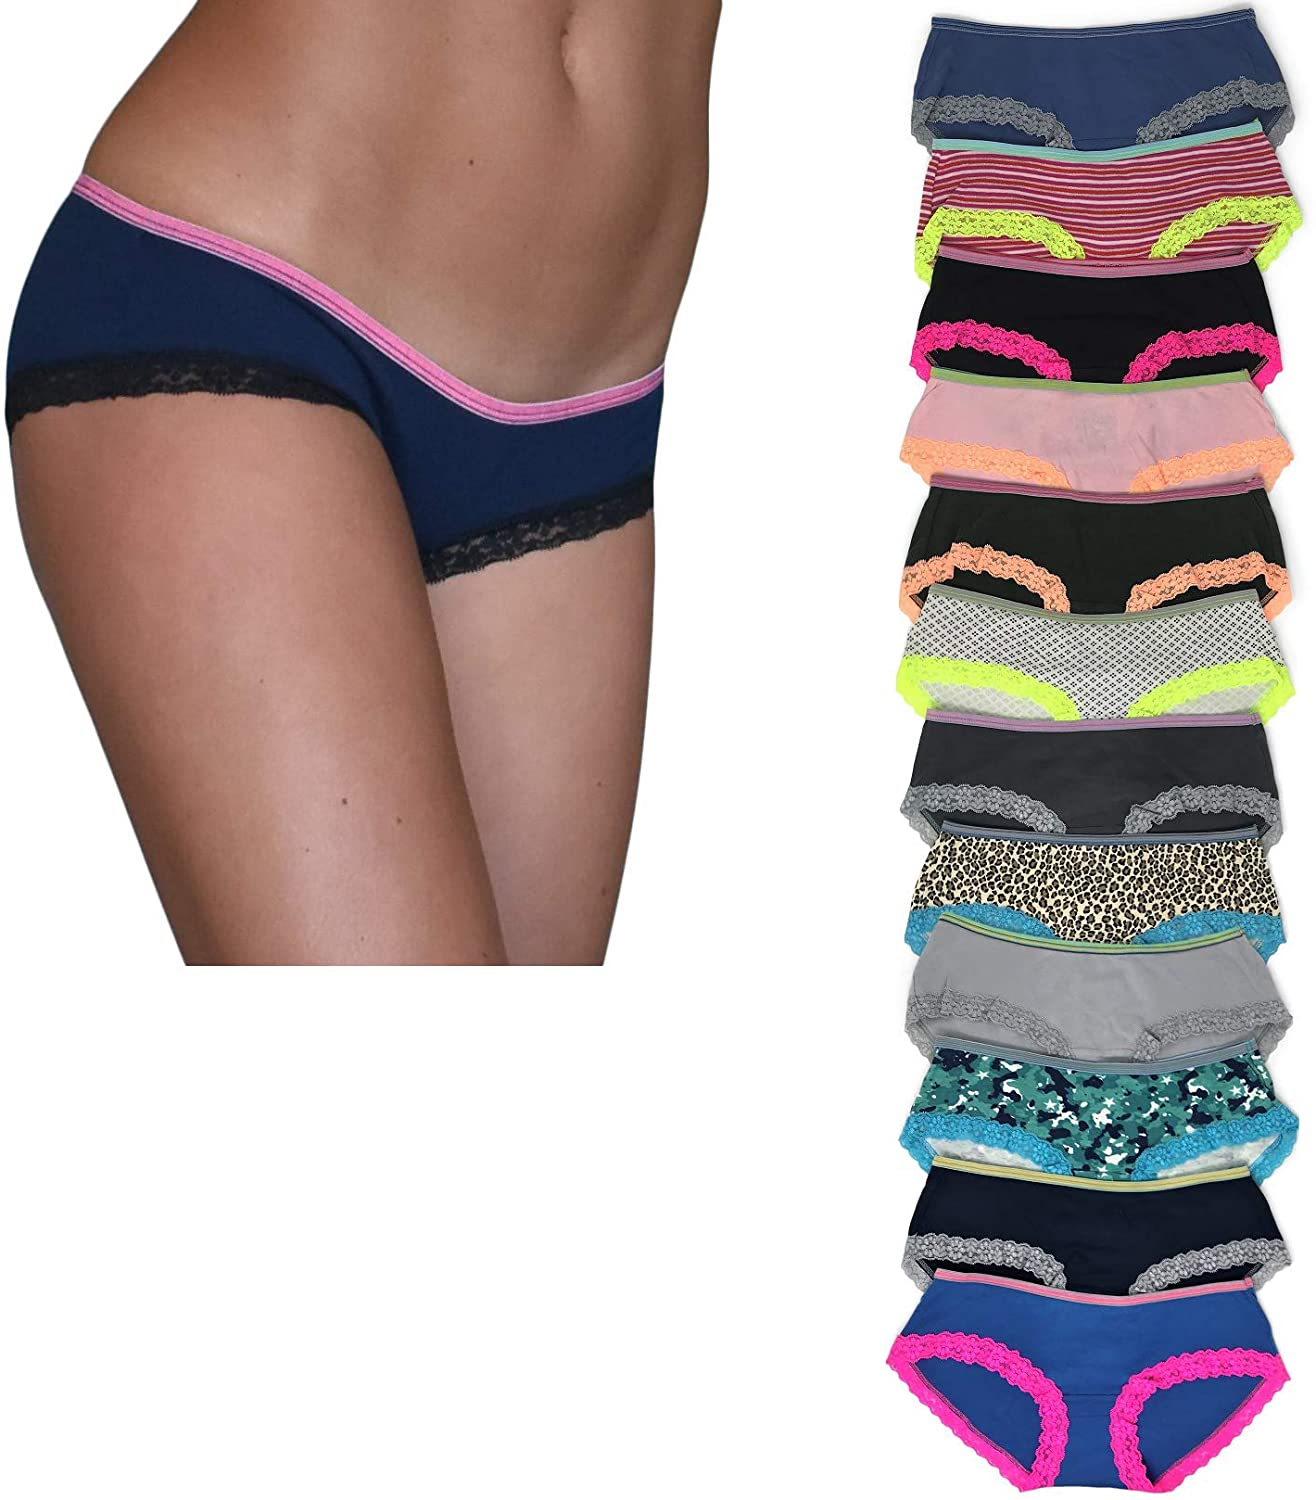 Sexy Basics Womens 12 Pack Lace Underwear Hipster Panties/Ultra-Soft 100% Cotton Underwear- 12 Pack Colors & Prints